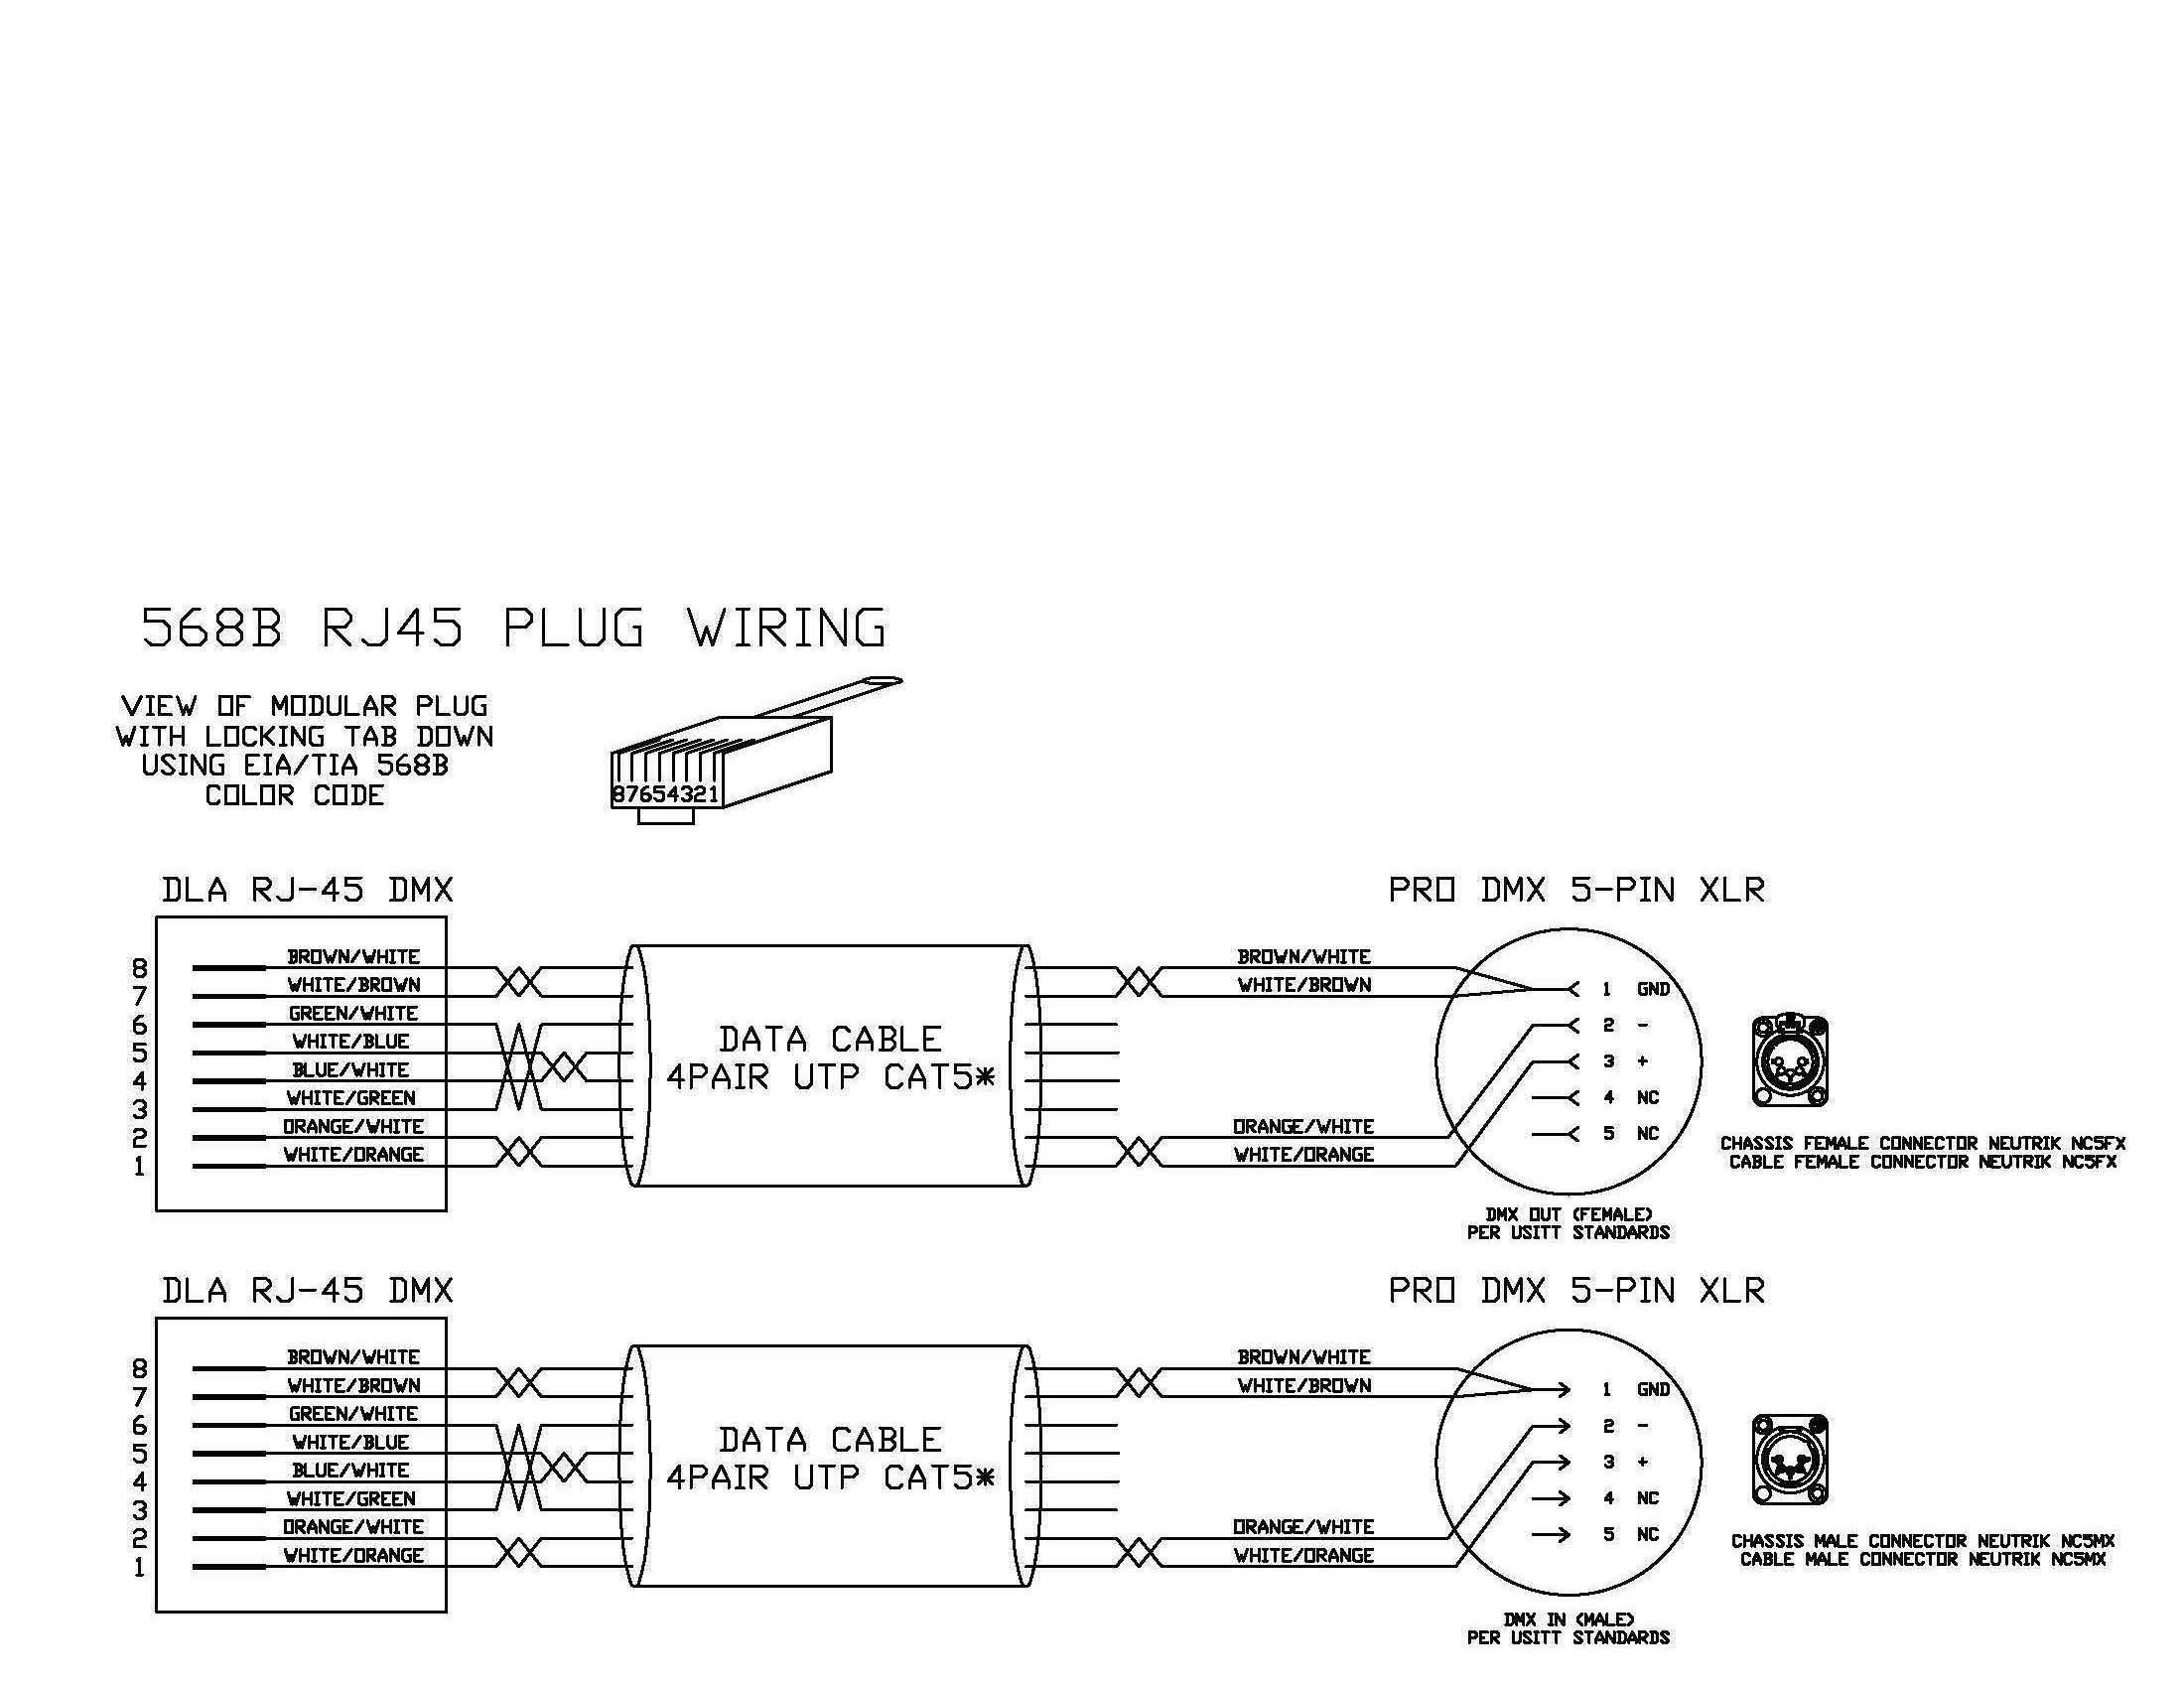 e975ddb6a839e630c21b81db05ca4fa6 xlr to rj45 wiring diagram xlr electrical wiring diagrams xlr wiring color codes at gsmx.co